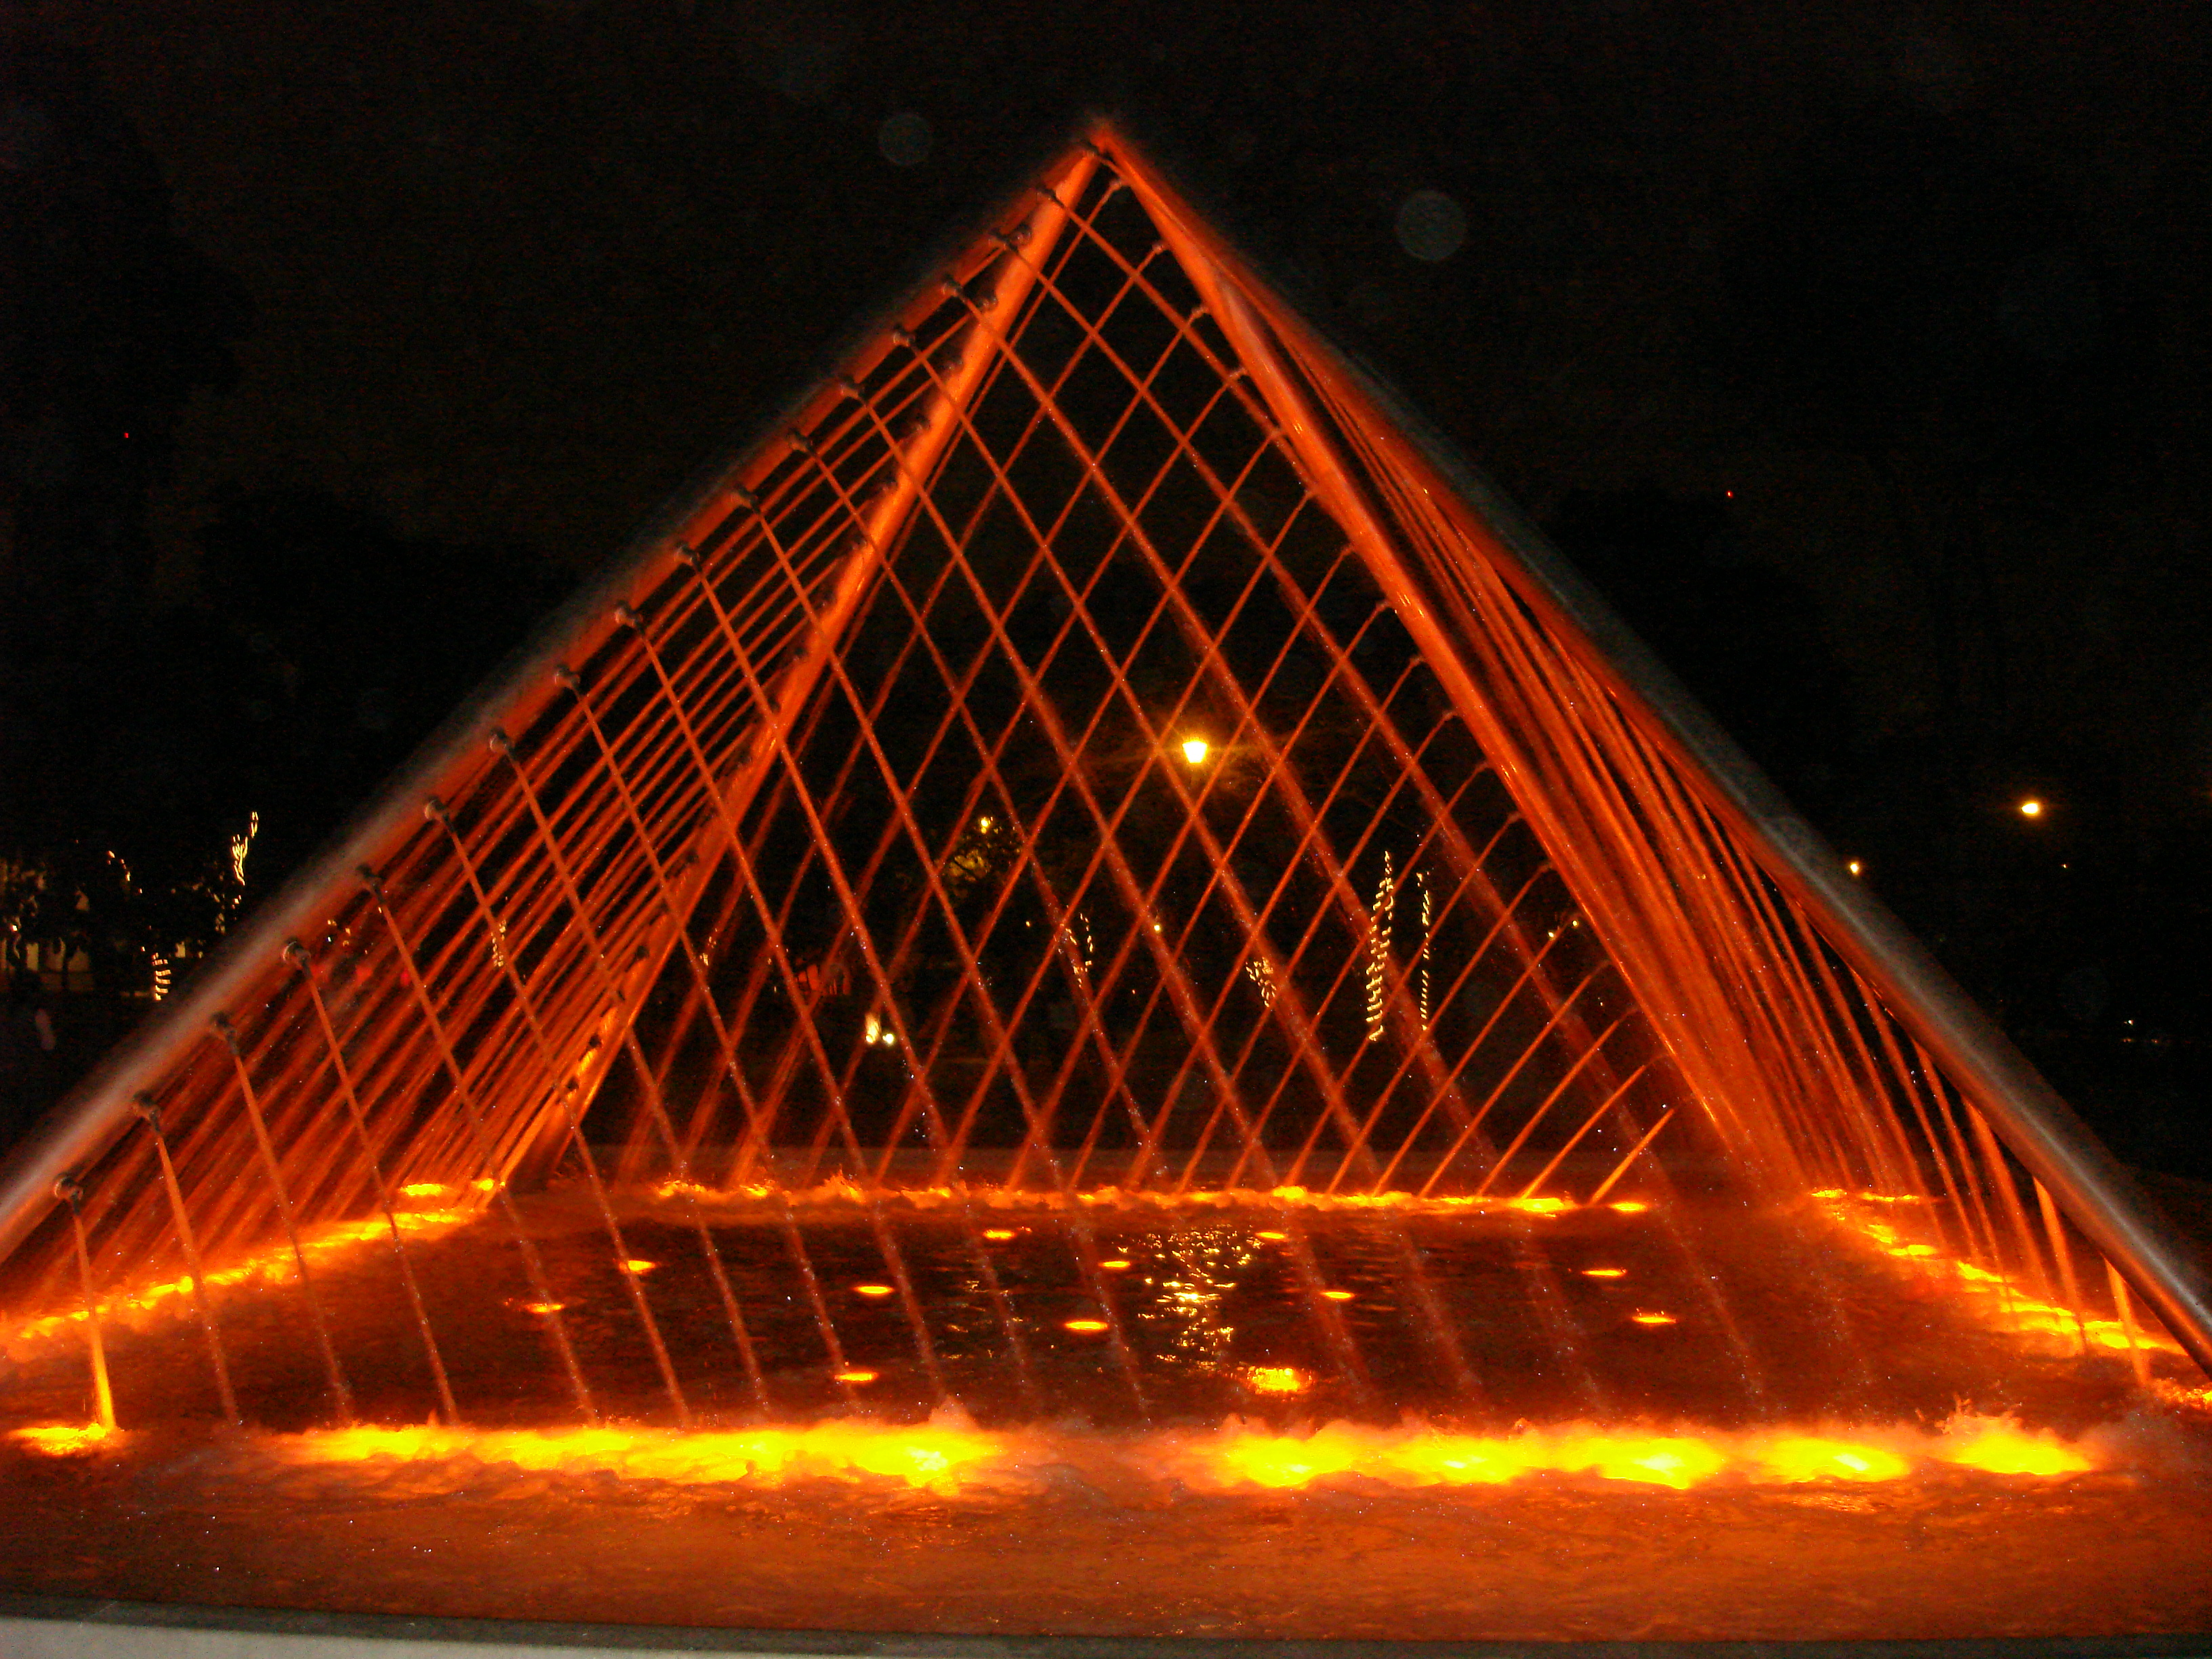 Water fountains lima - Fuente De La Armonia Which Translates Into The Fountain Of Harmony Is A Water Fountain In The Shape Of A Pyramid It Looks Like Those Lasers From James